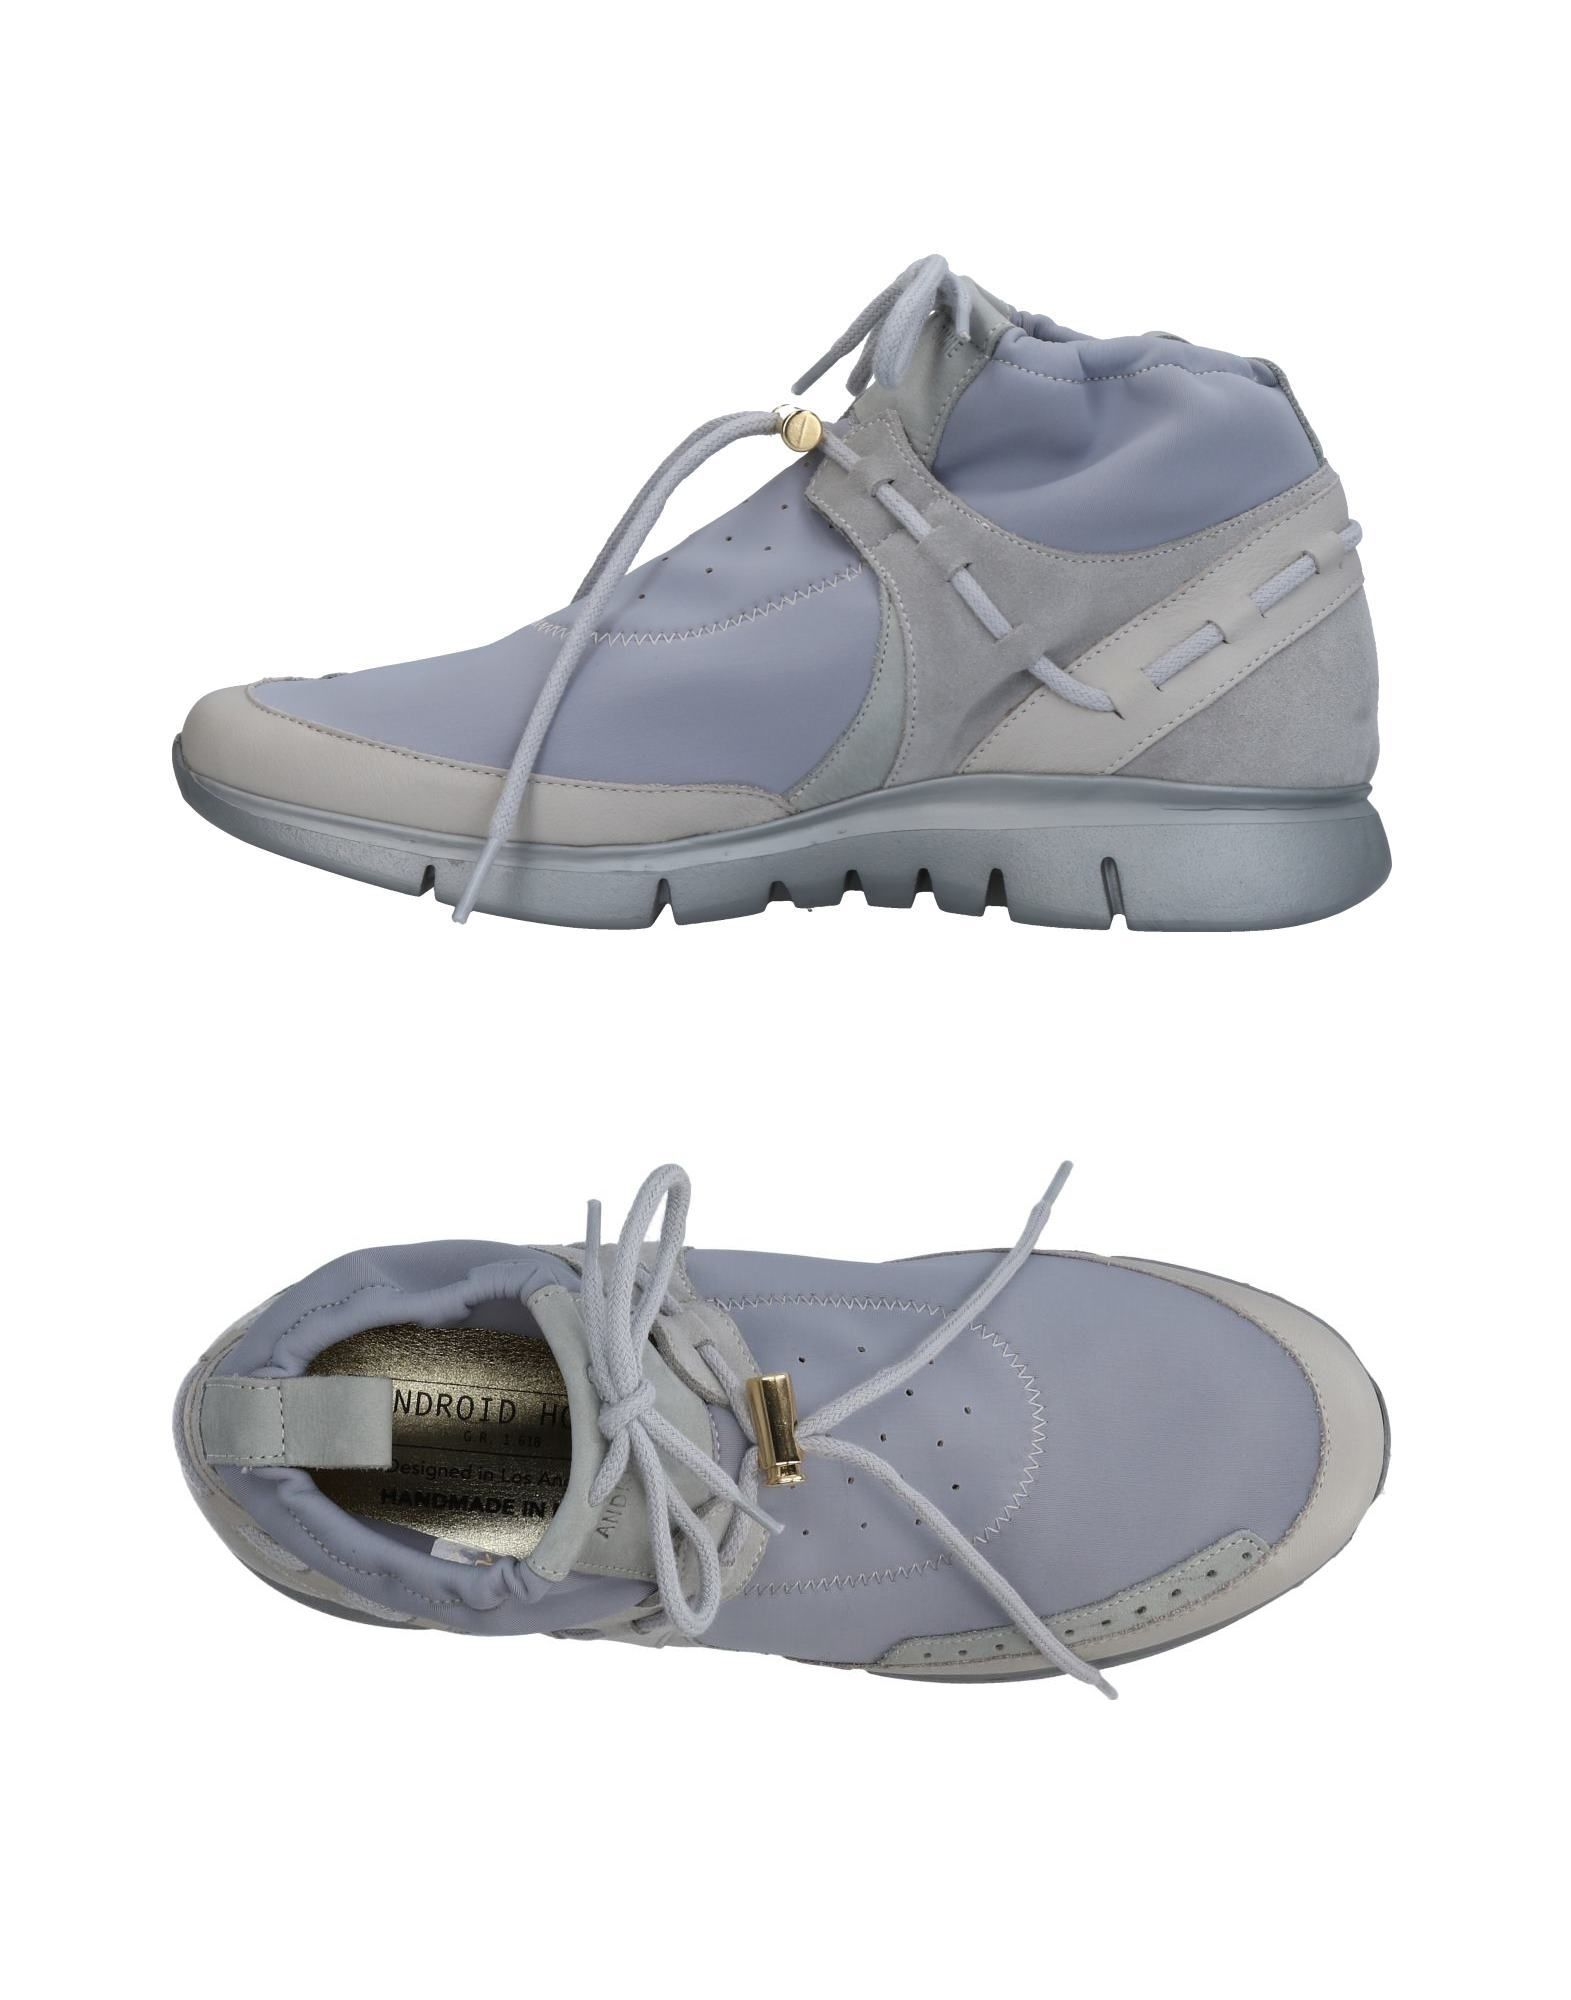 ANDROID HOMME Sneakers in Lilac